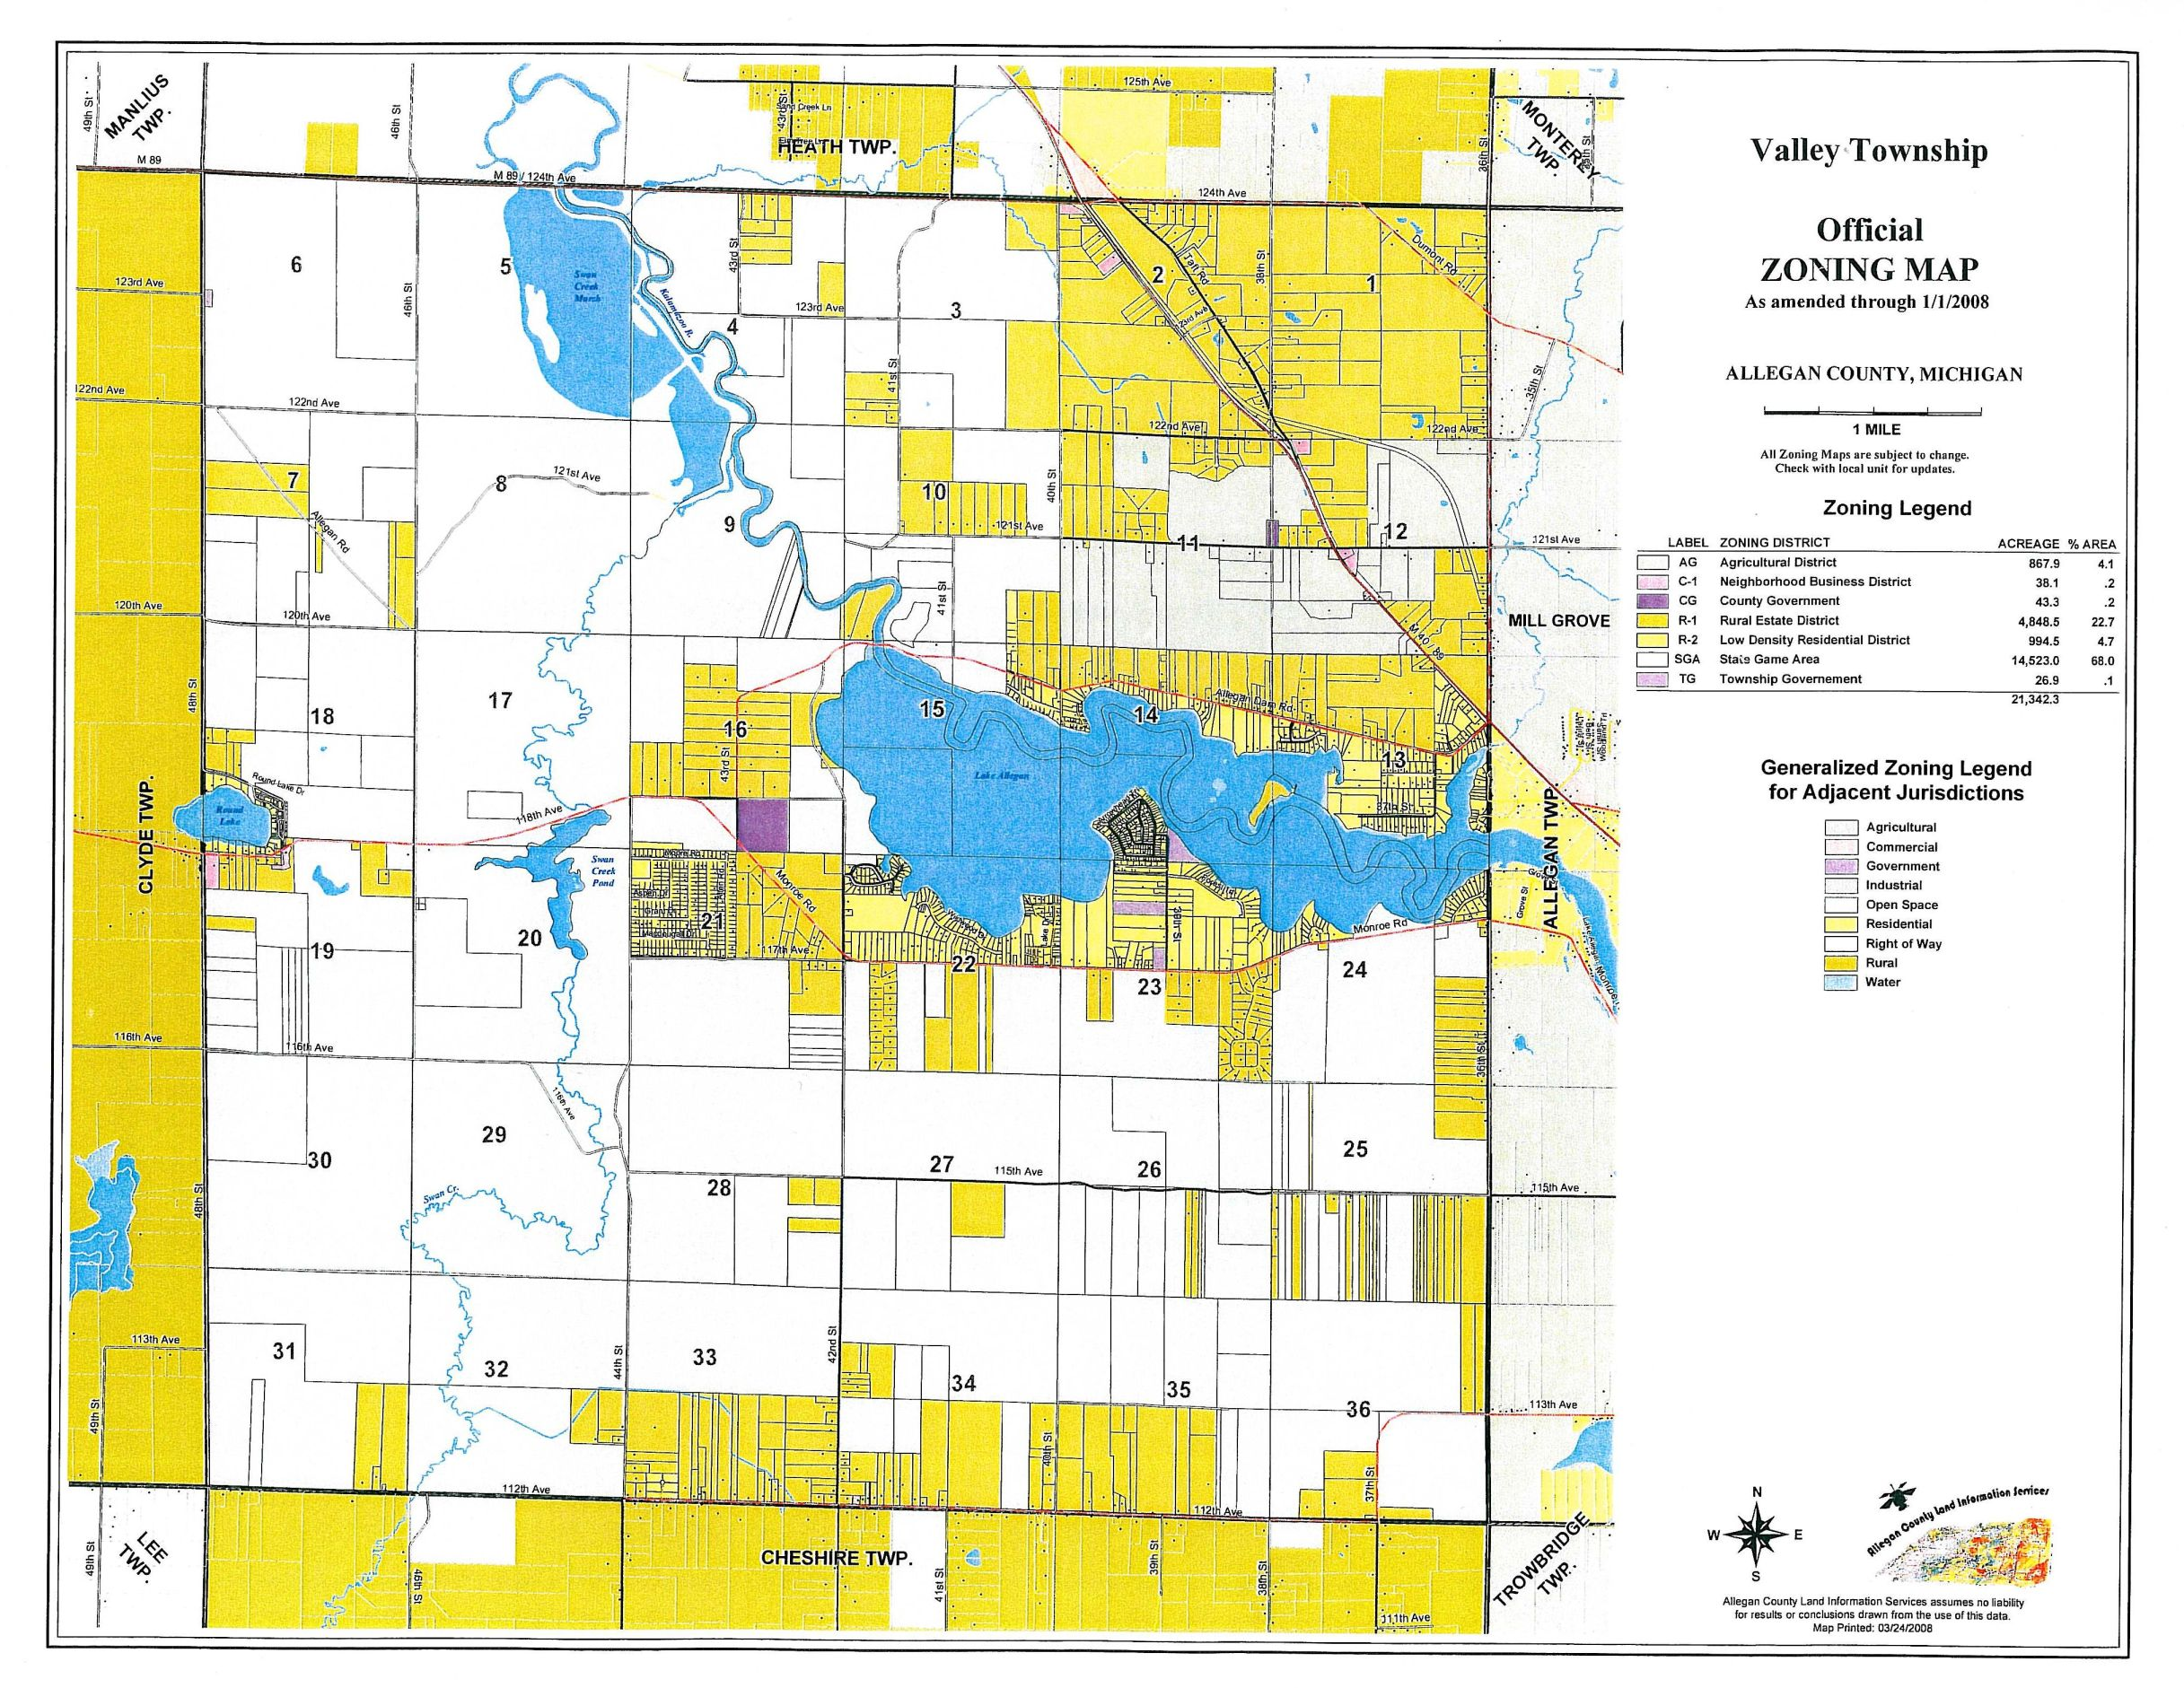 Doents Map Of Allegan County Mi on map of allegan michigan, map of genesee county mi, map of hillsdale county mi, city of allegan mi, map of macomb county mi, map of roscommon county mi, map of barry county mi, osceola county mi, map of ottawa county road, map of gogebic county mi, map of mackinac county mi, map of st. clair county mi, map of wexford county mi, map of eaton county parks, map of allegan township mi, map of saginaw county mi, map of alger county mi, map of lapeer county mi, map of washtenaw county mi, map of ingham county mi,